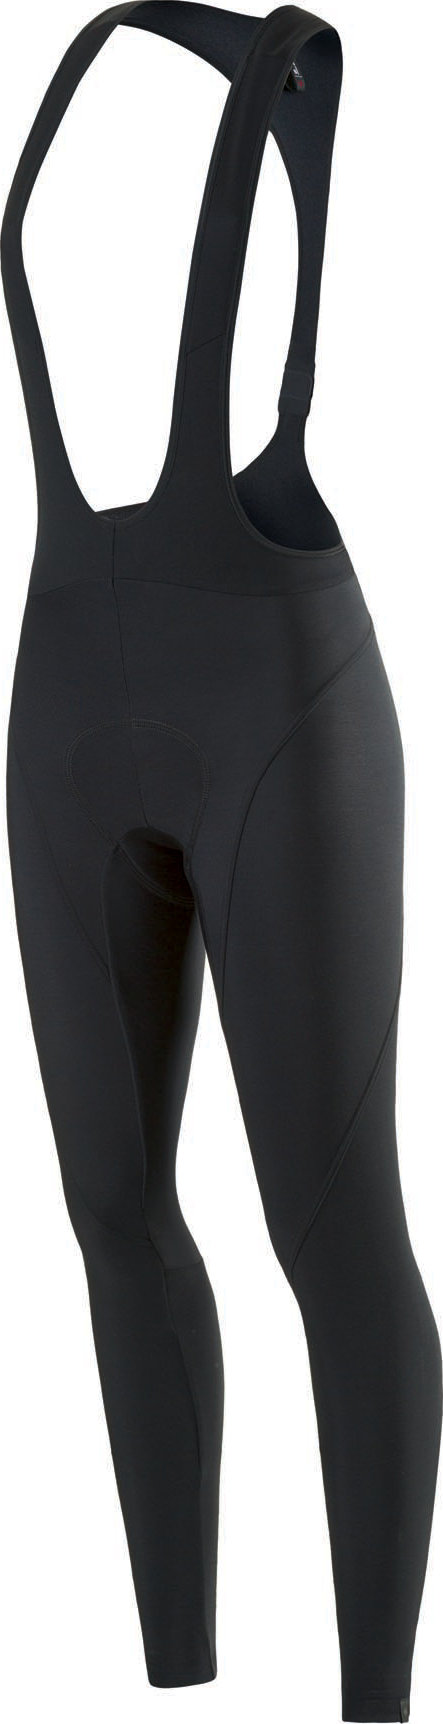 Specialized Therminal RBX Comp Wmn Cycling Bib Tight Black Small - Alpha Bikes